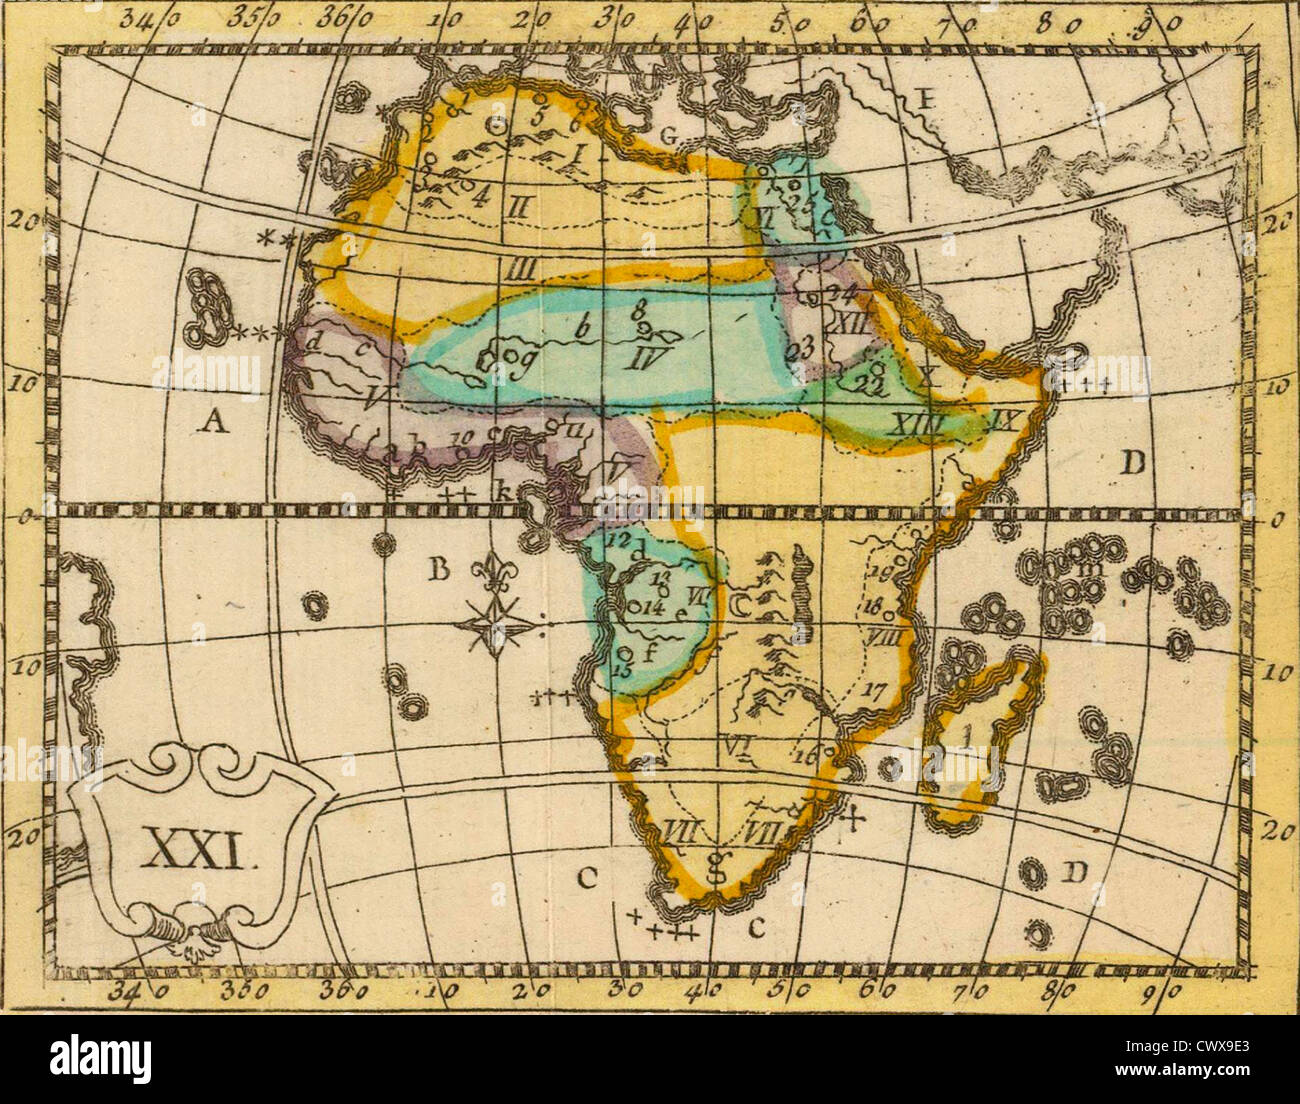 Antique Map Of Africa From The Out Of Print 1841 Goodrich Atlas